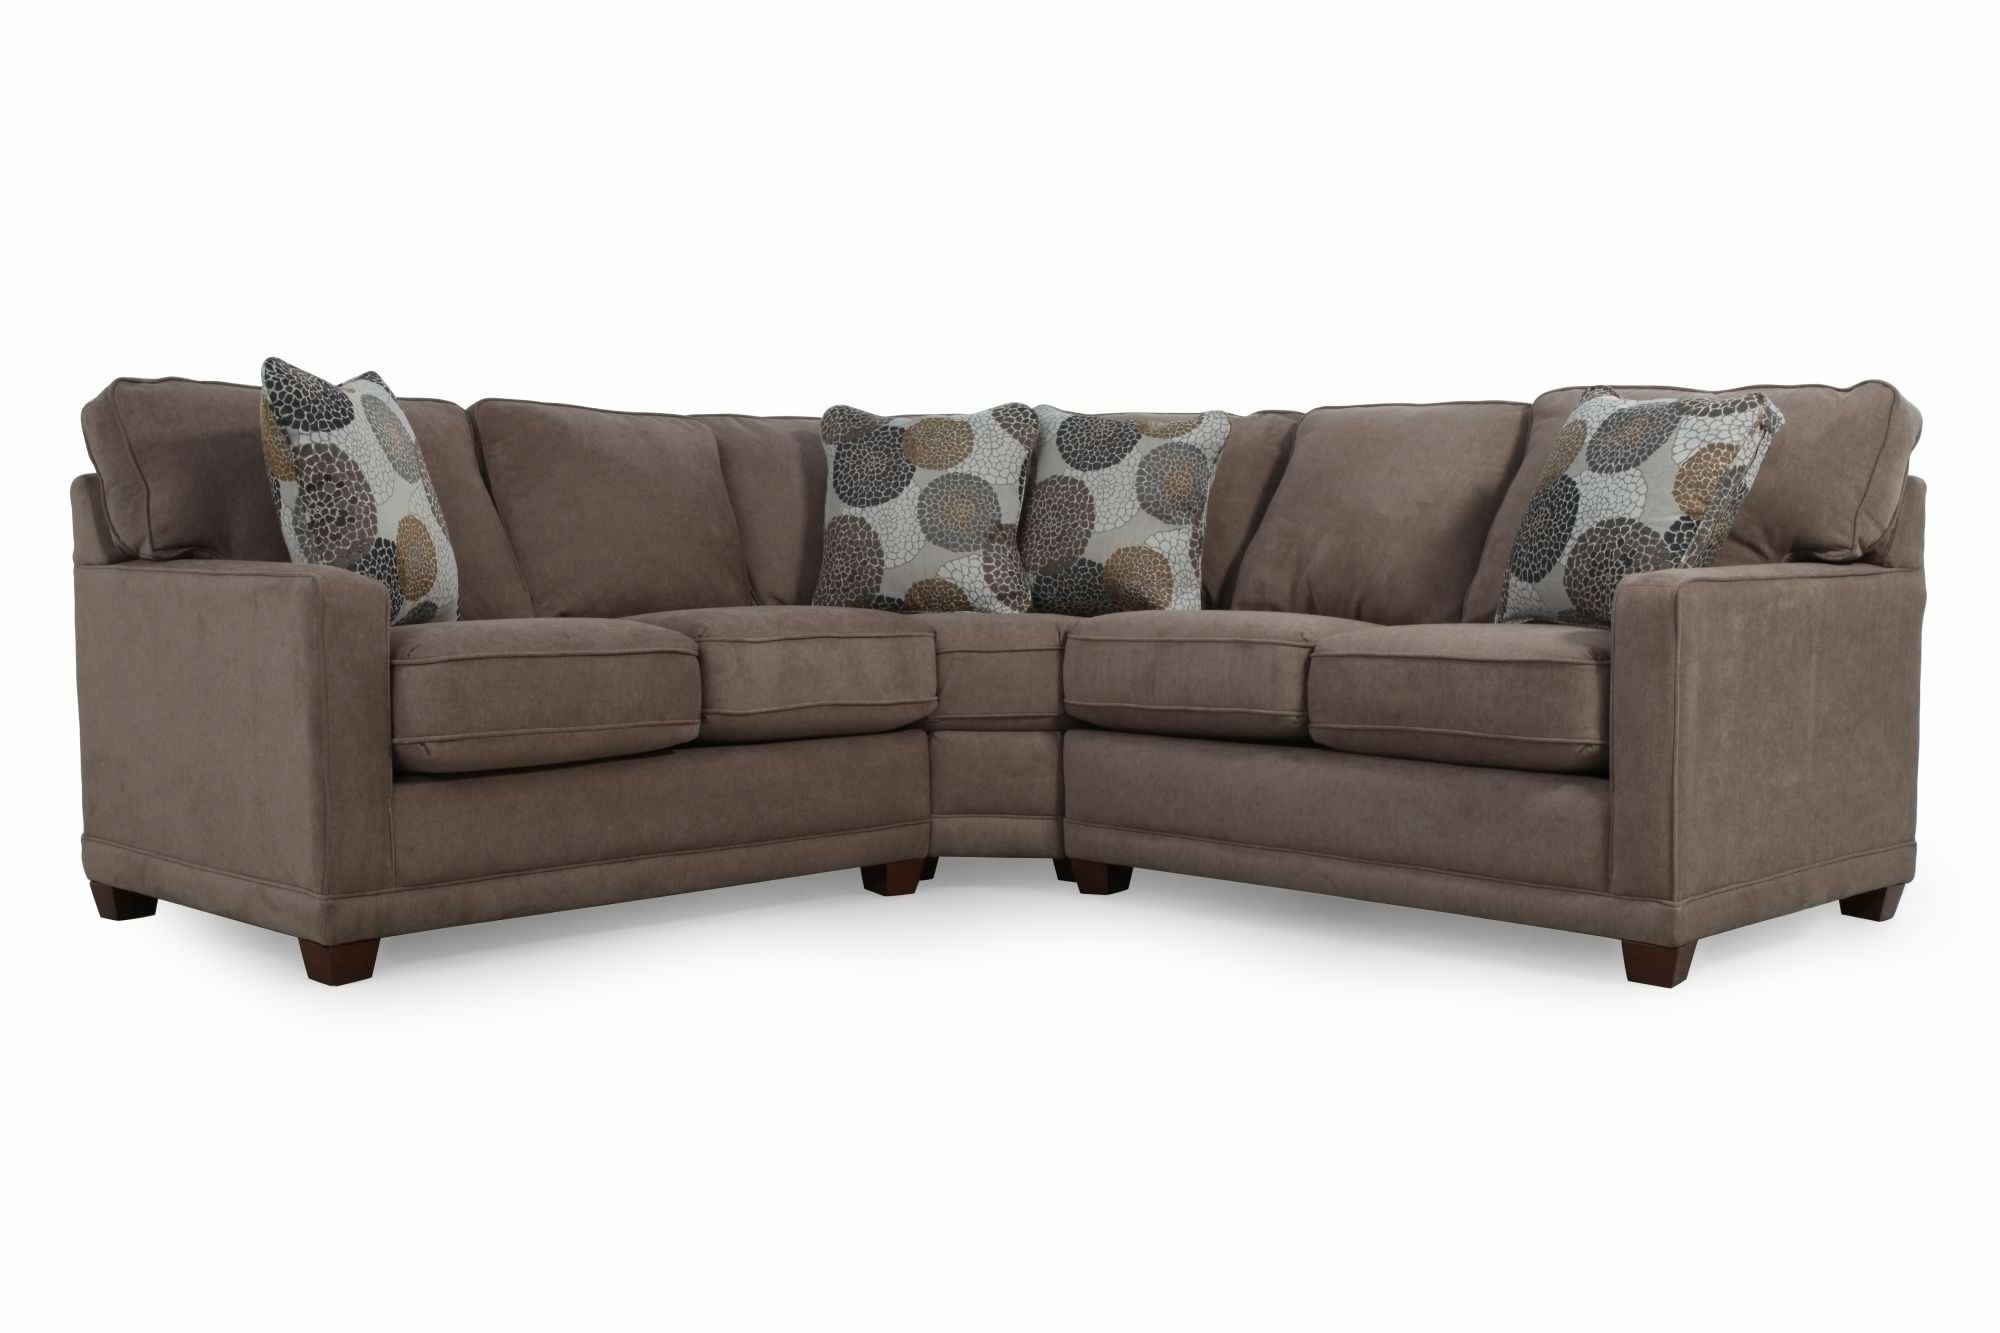 2018 Lazy Boy Sectional Sofas For Sectional Sofa Design: Lazy Boy Sectional Sofa Sale James (View 1 of 15)